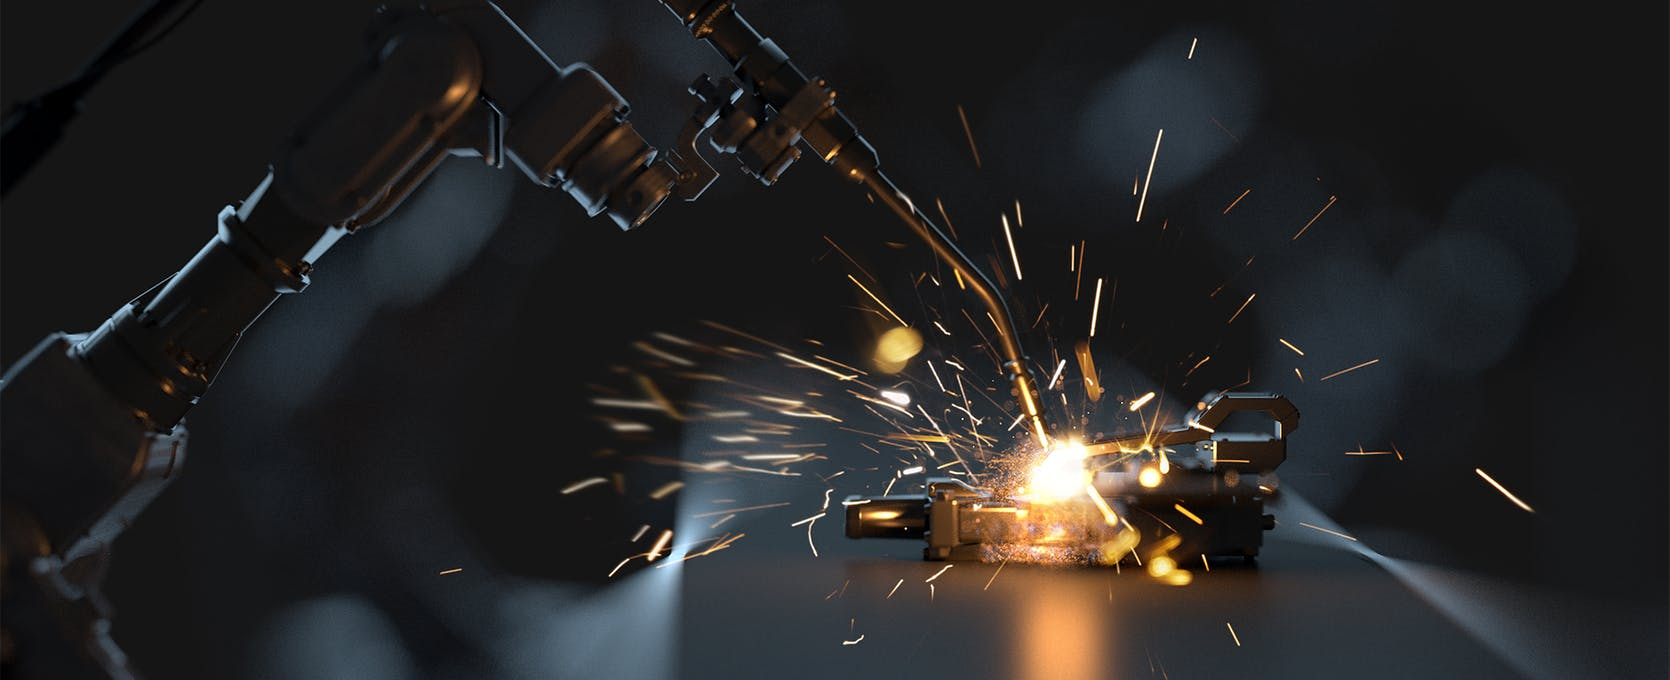 manufacturing sparks